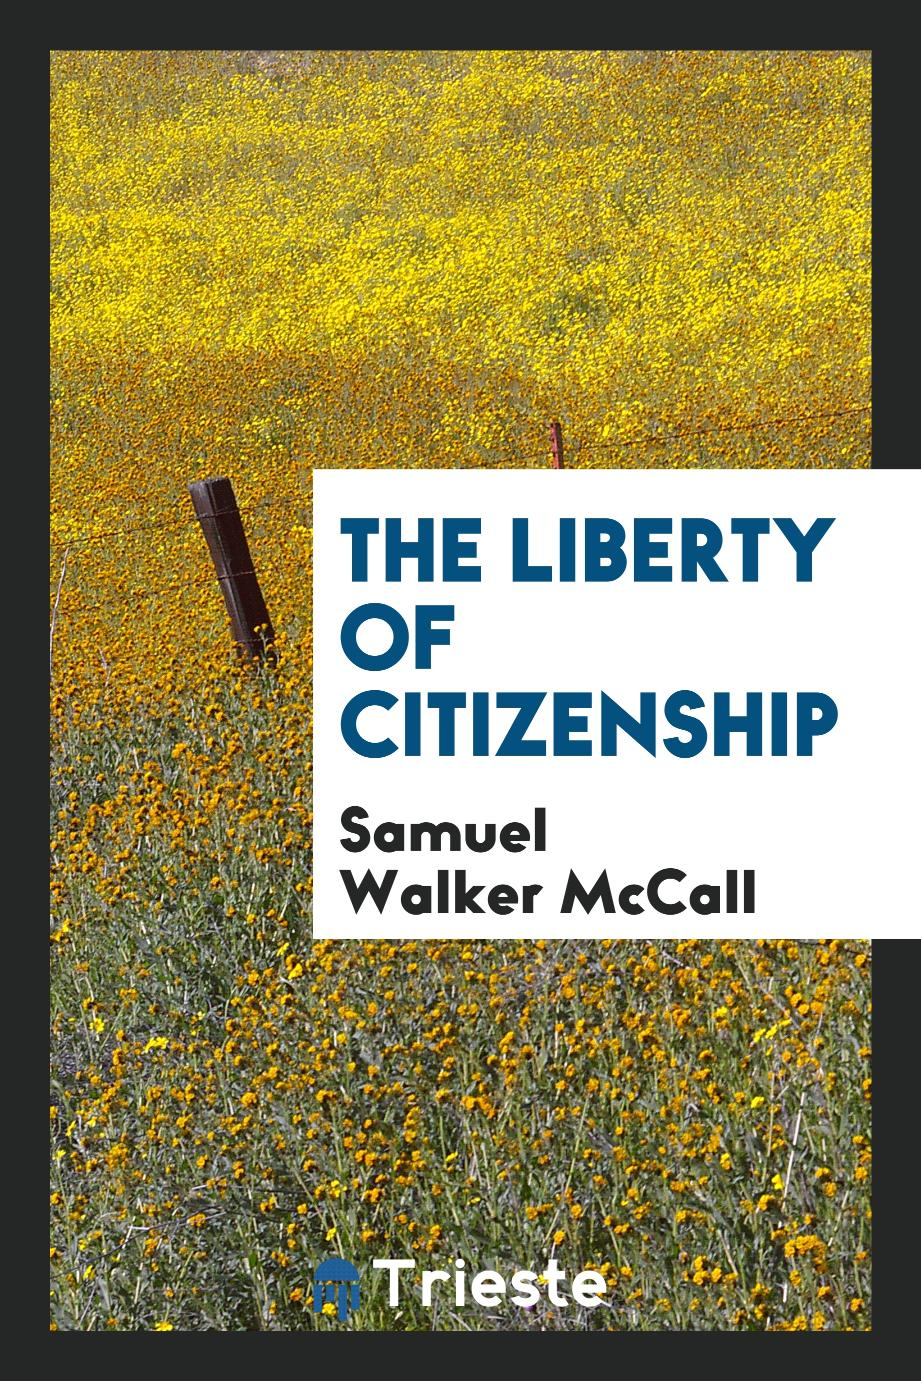 The Liberty of Citizenship